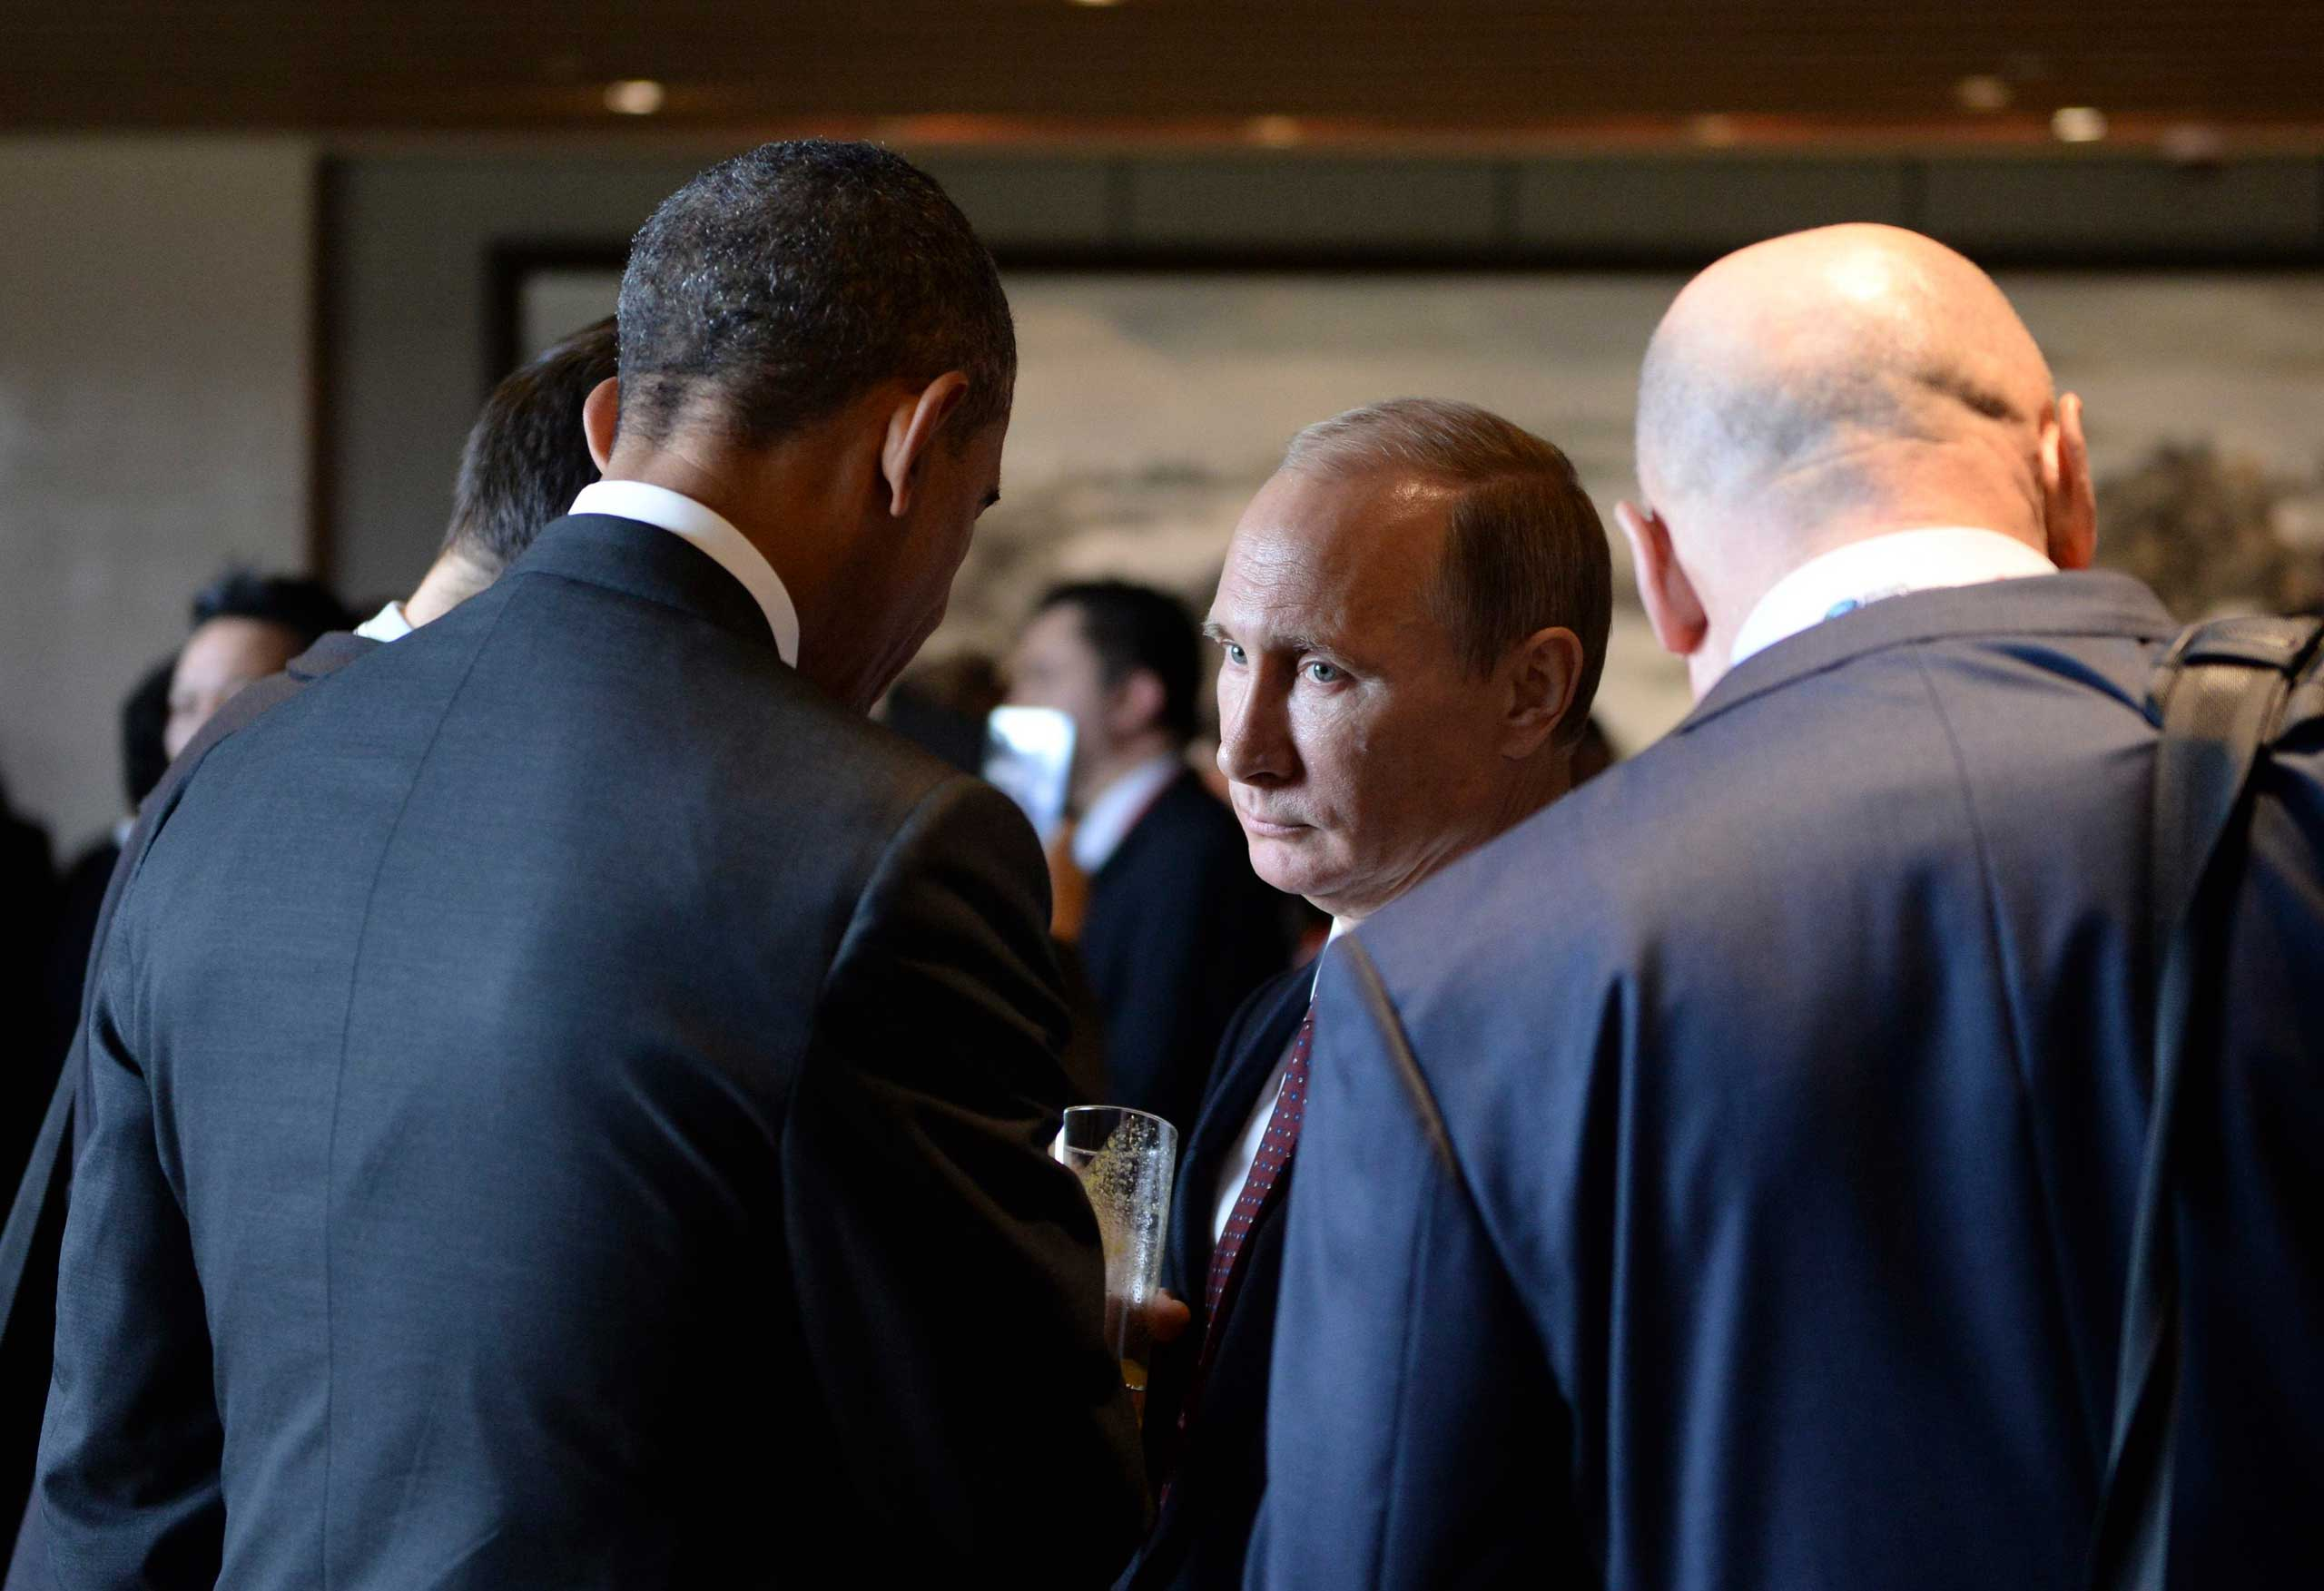 Russian President Vladimir Putin seen talking to President Barack Obama during the Asia Pacific Economic Cooperation Summit in Beijing, Nov. 11, 2014.